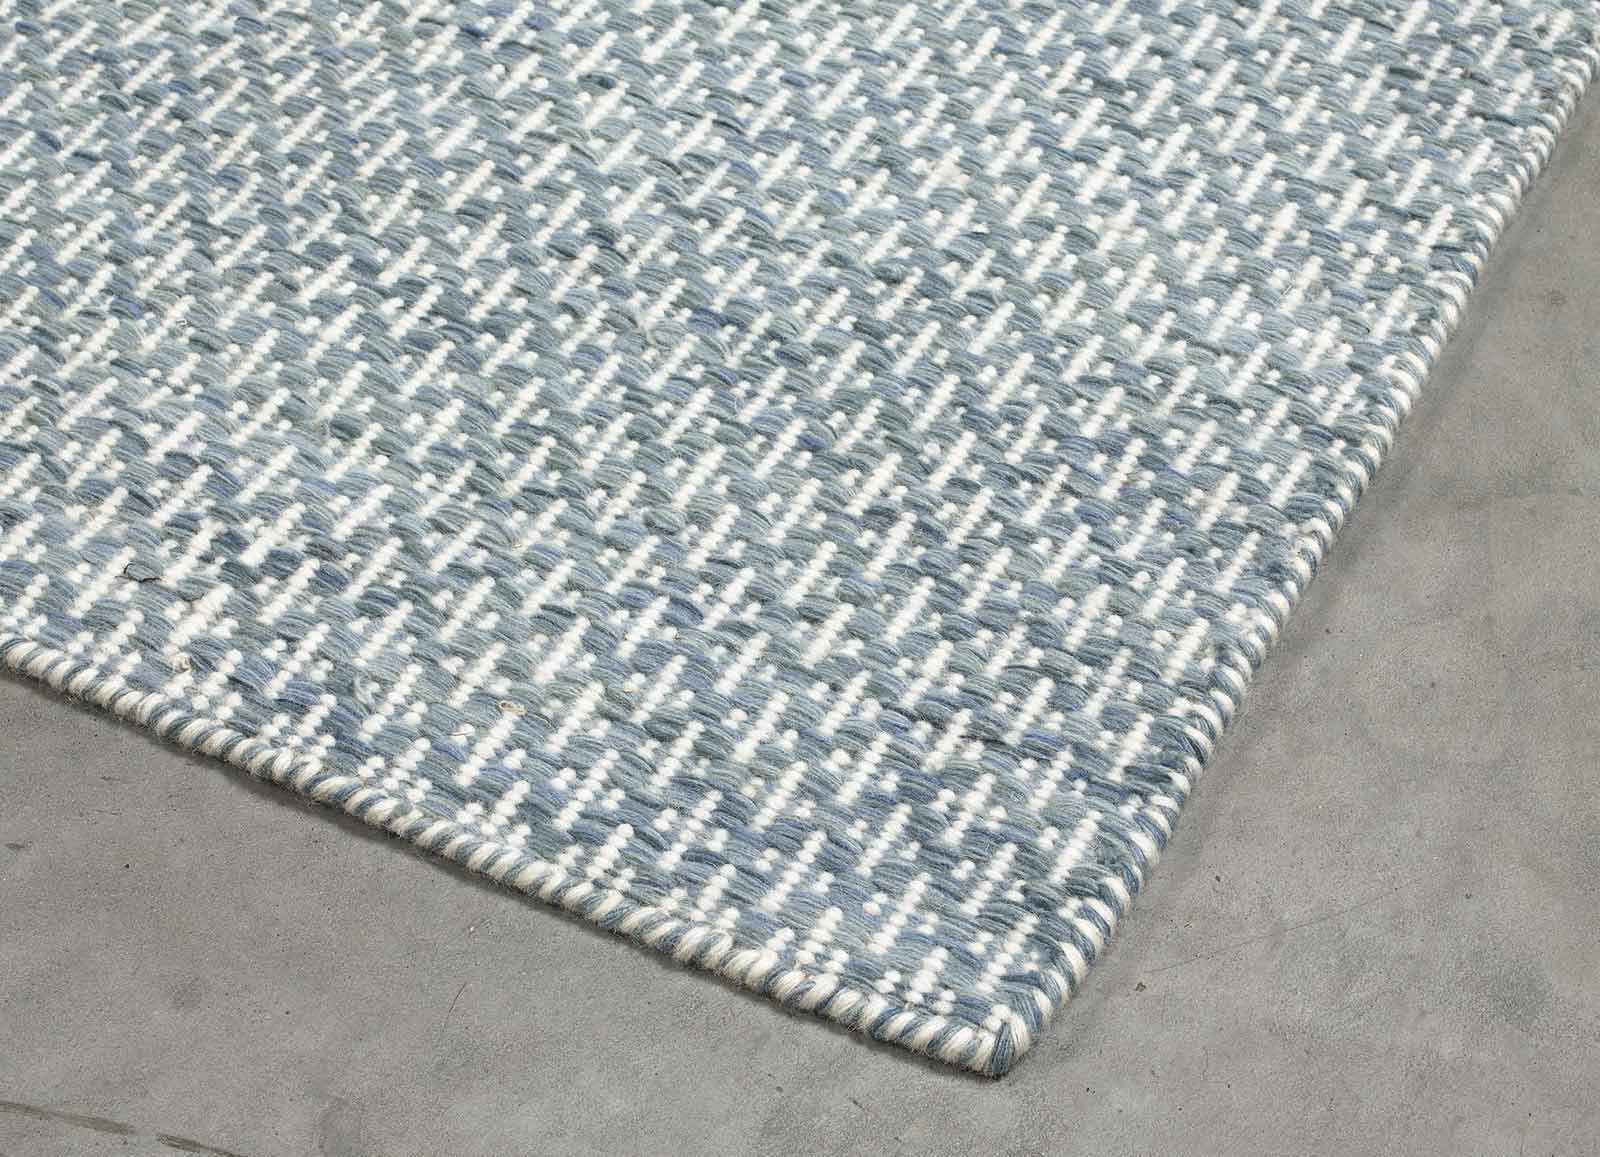 vloerkleed Angelo Rugs LX3030 19 Mic Mac corner